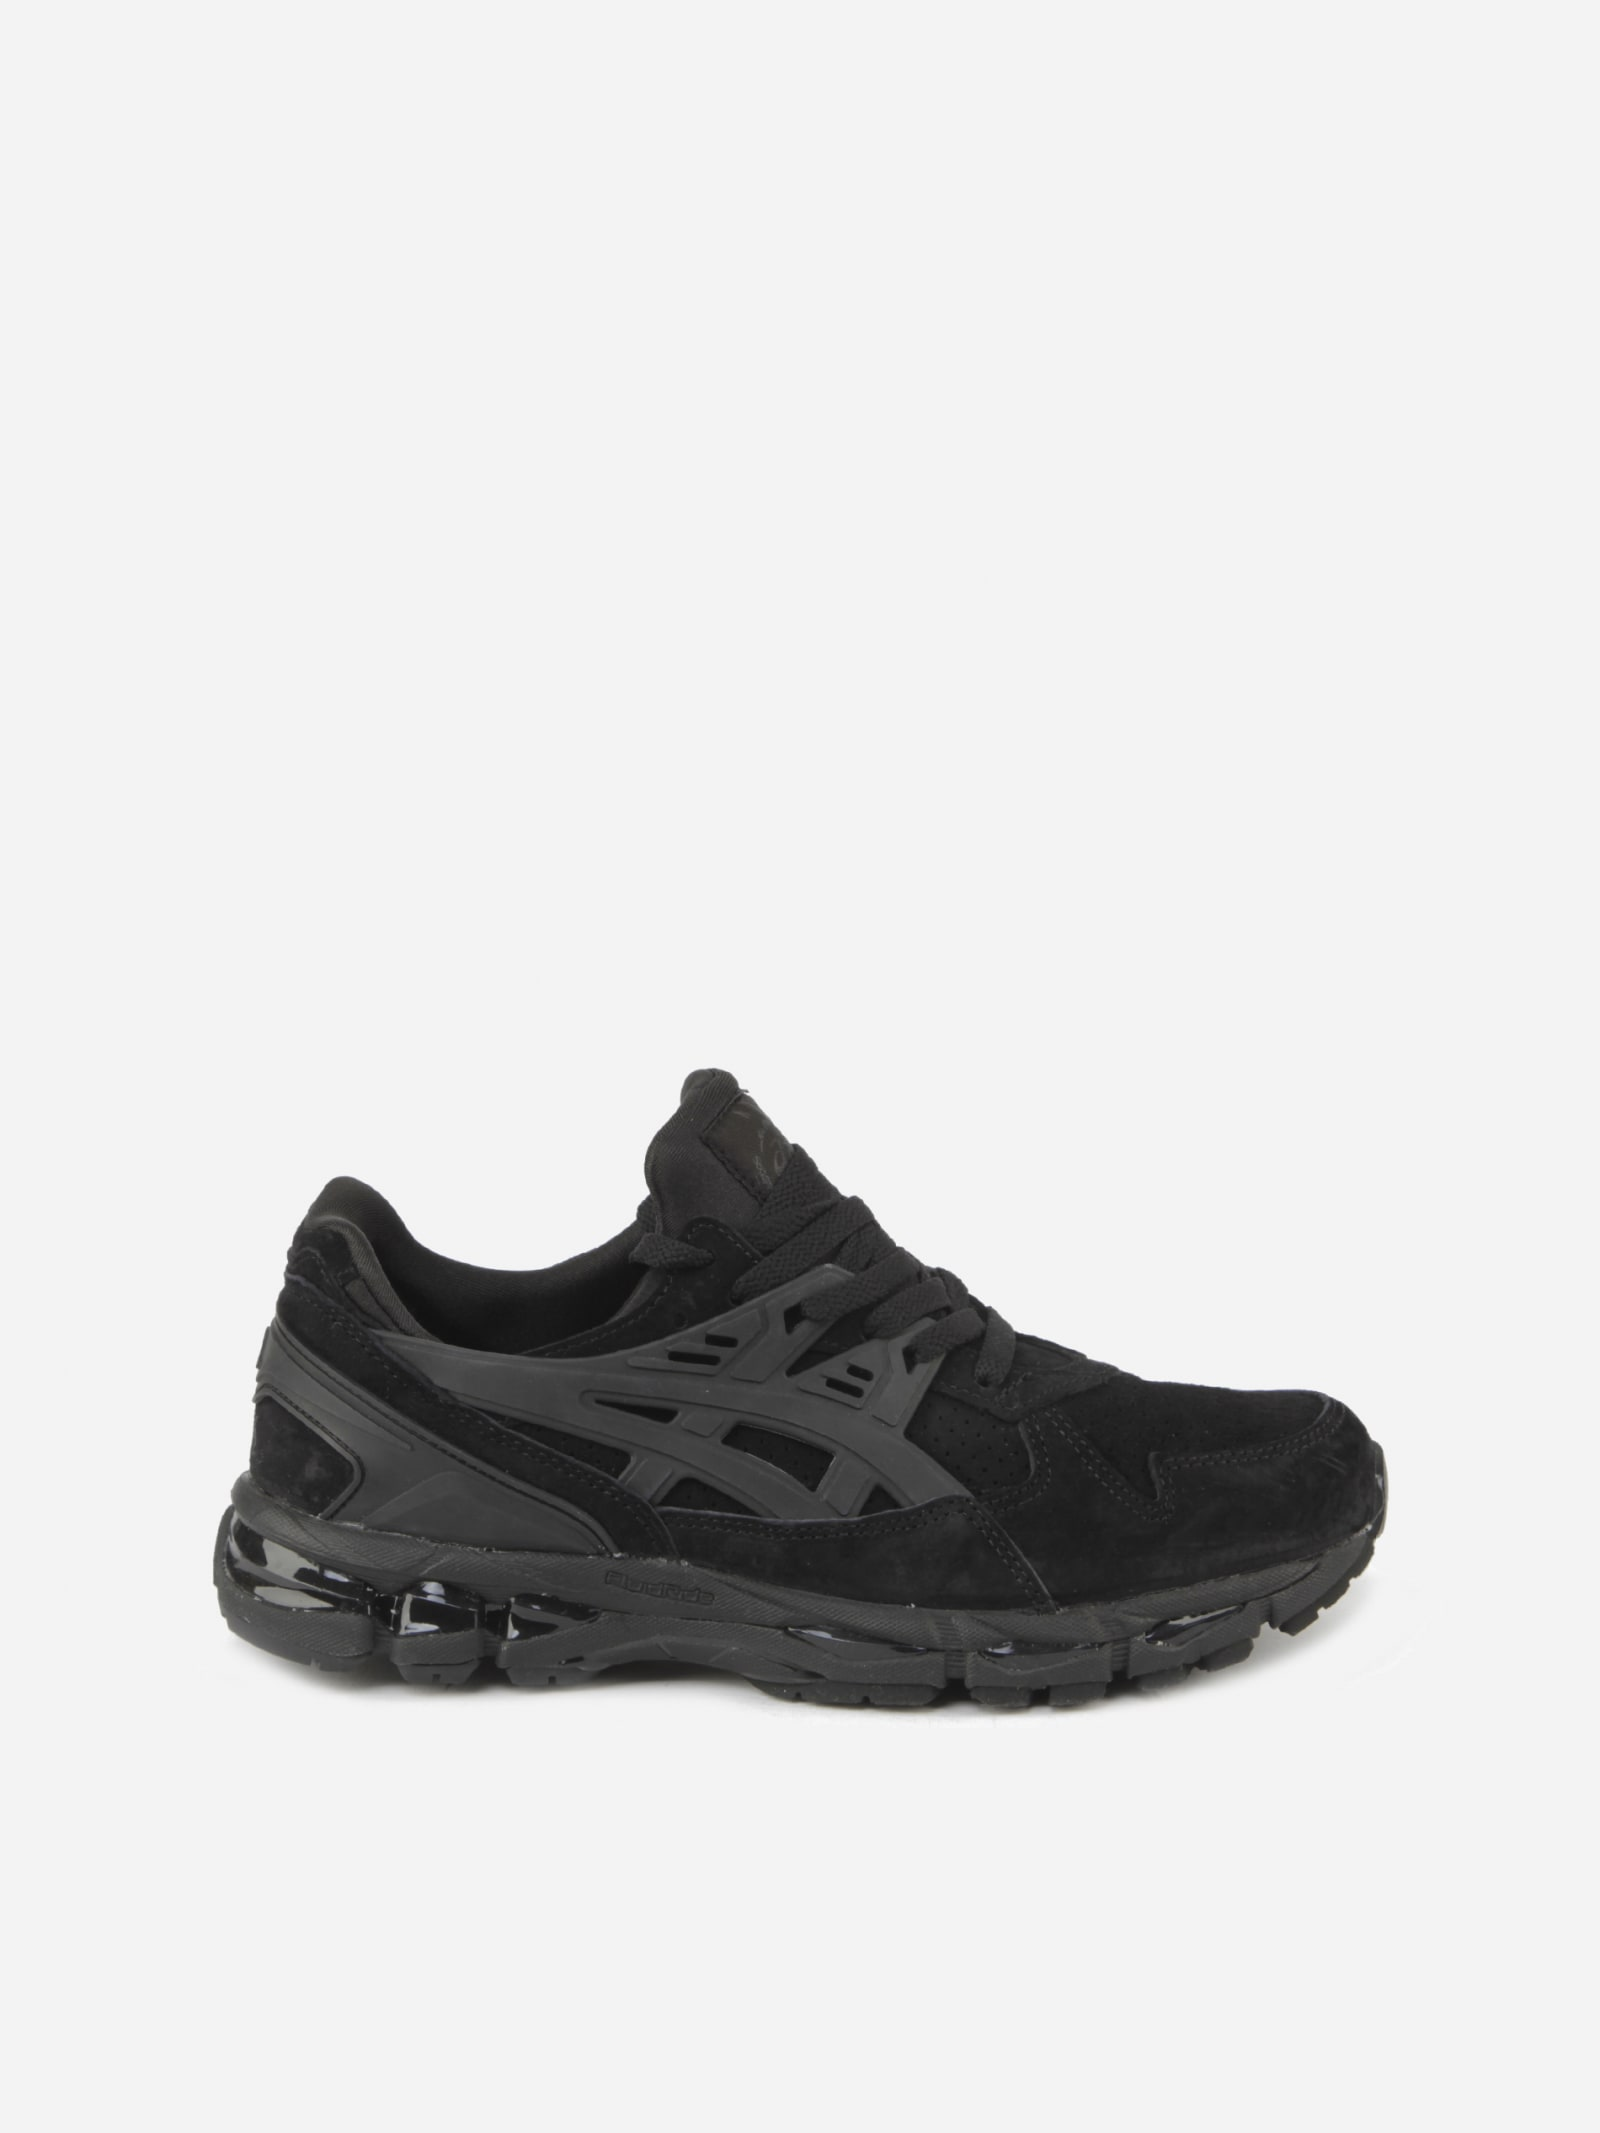 Asics BLACK GEL-KAYANO TRAINER 21 SNEAKER